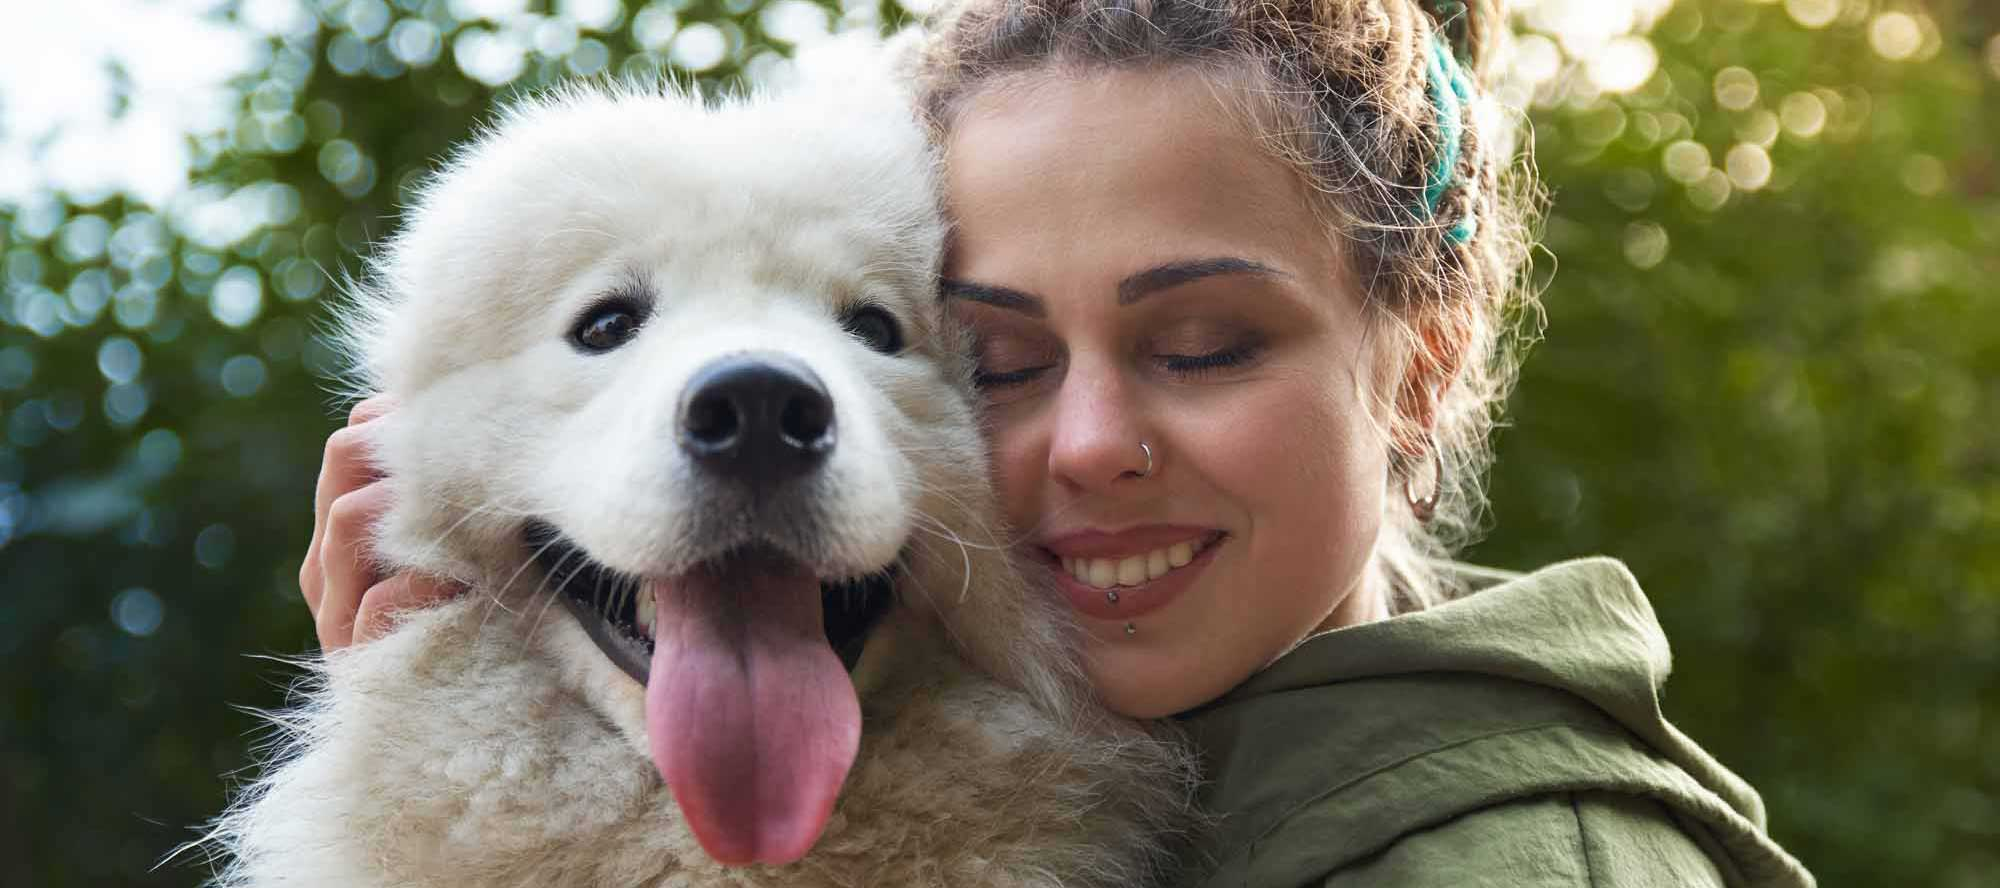 woman-with-adopted-pet-heroic-fundraising